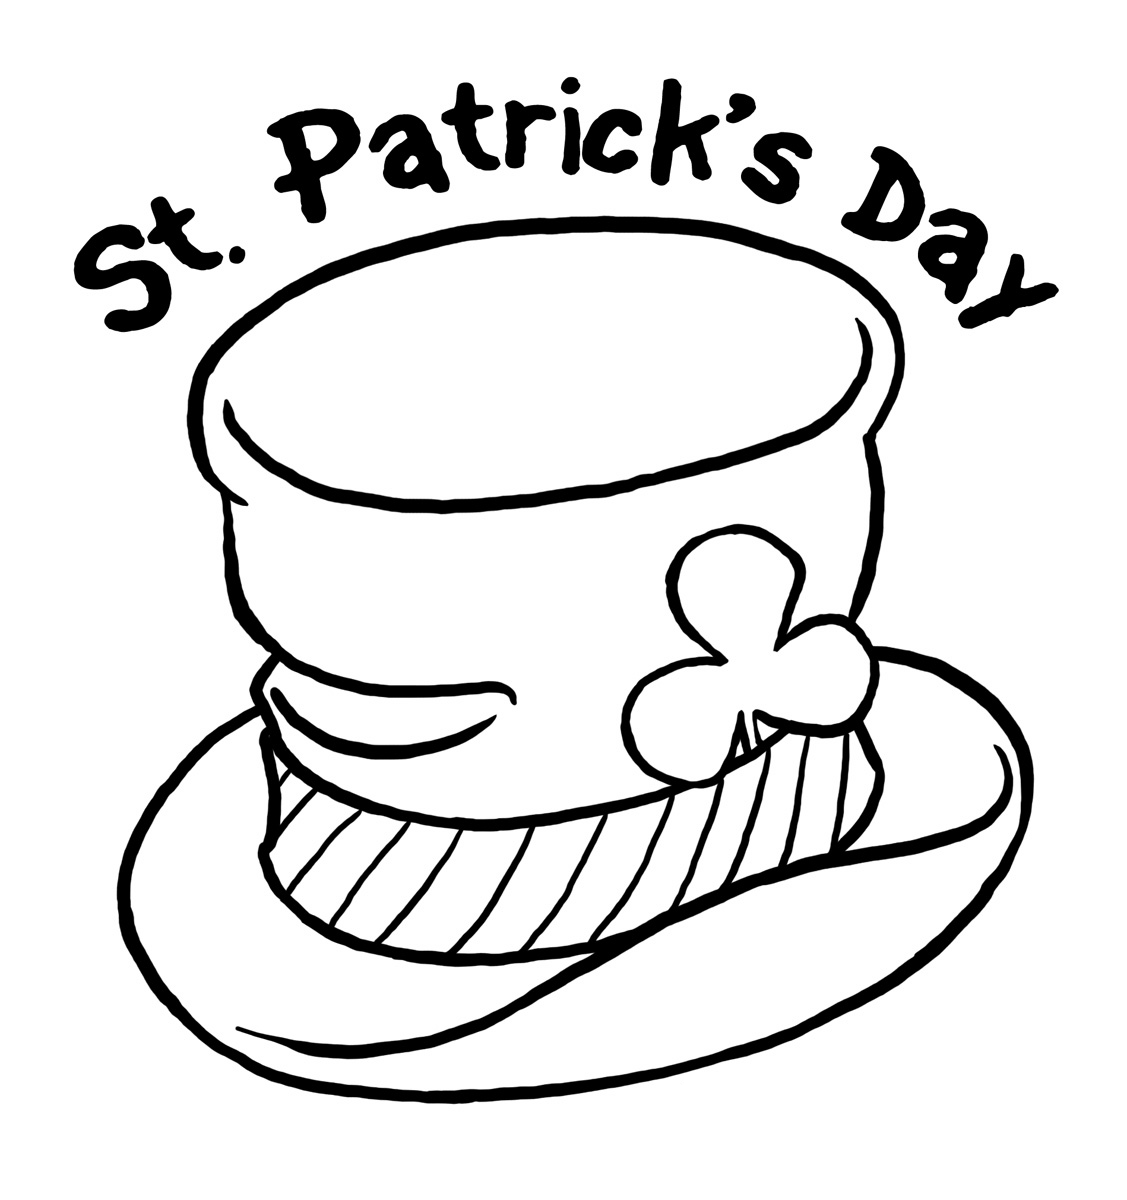 Free st patricks day clipart color.